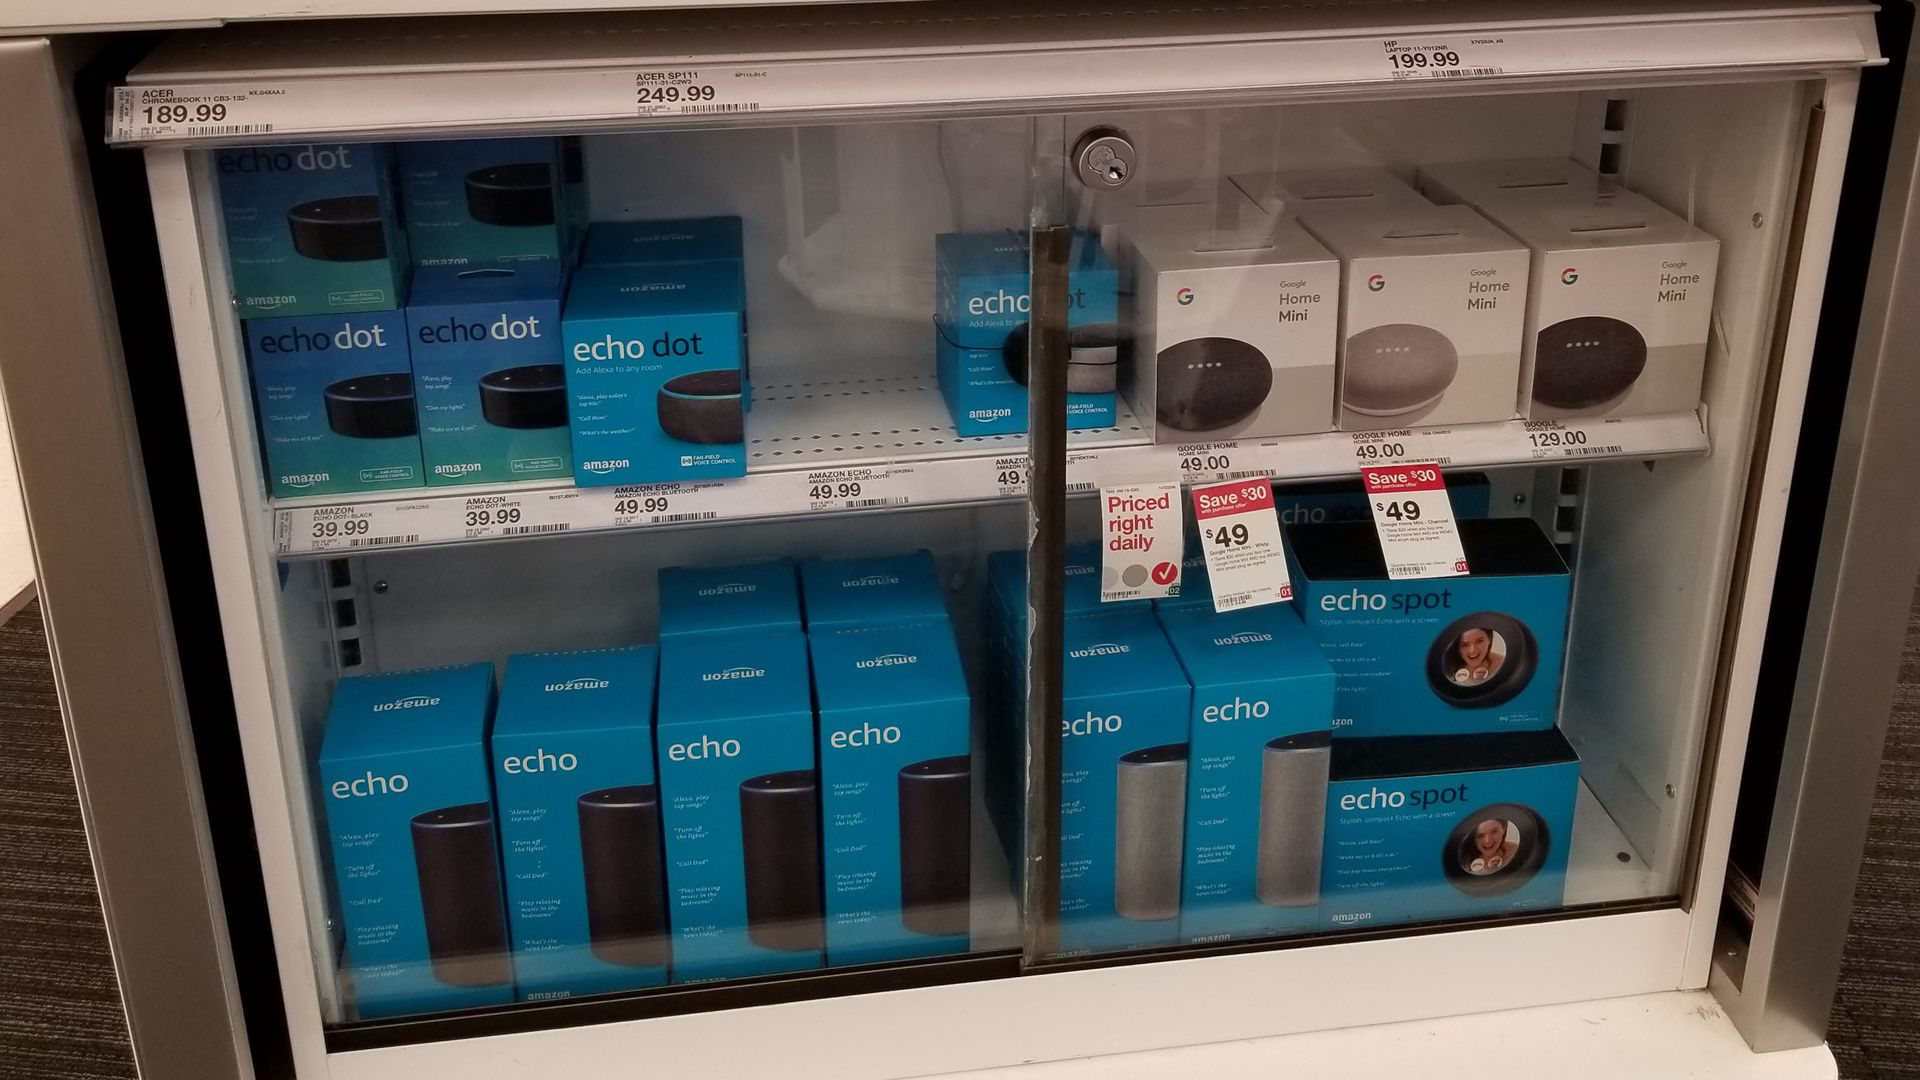 Case of Amazon Alexa products in a store